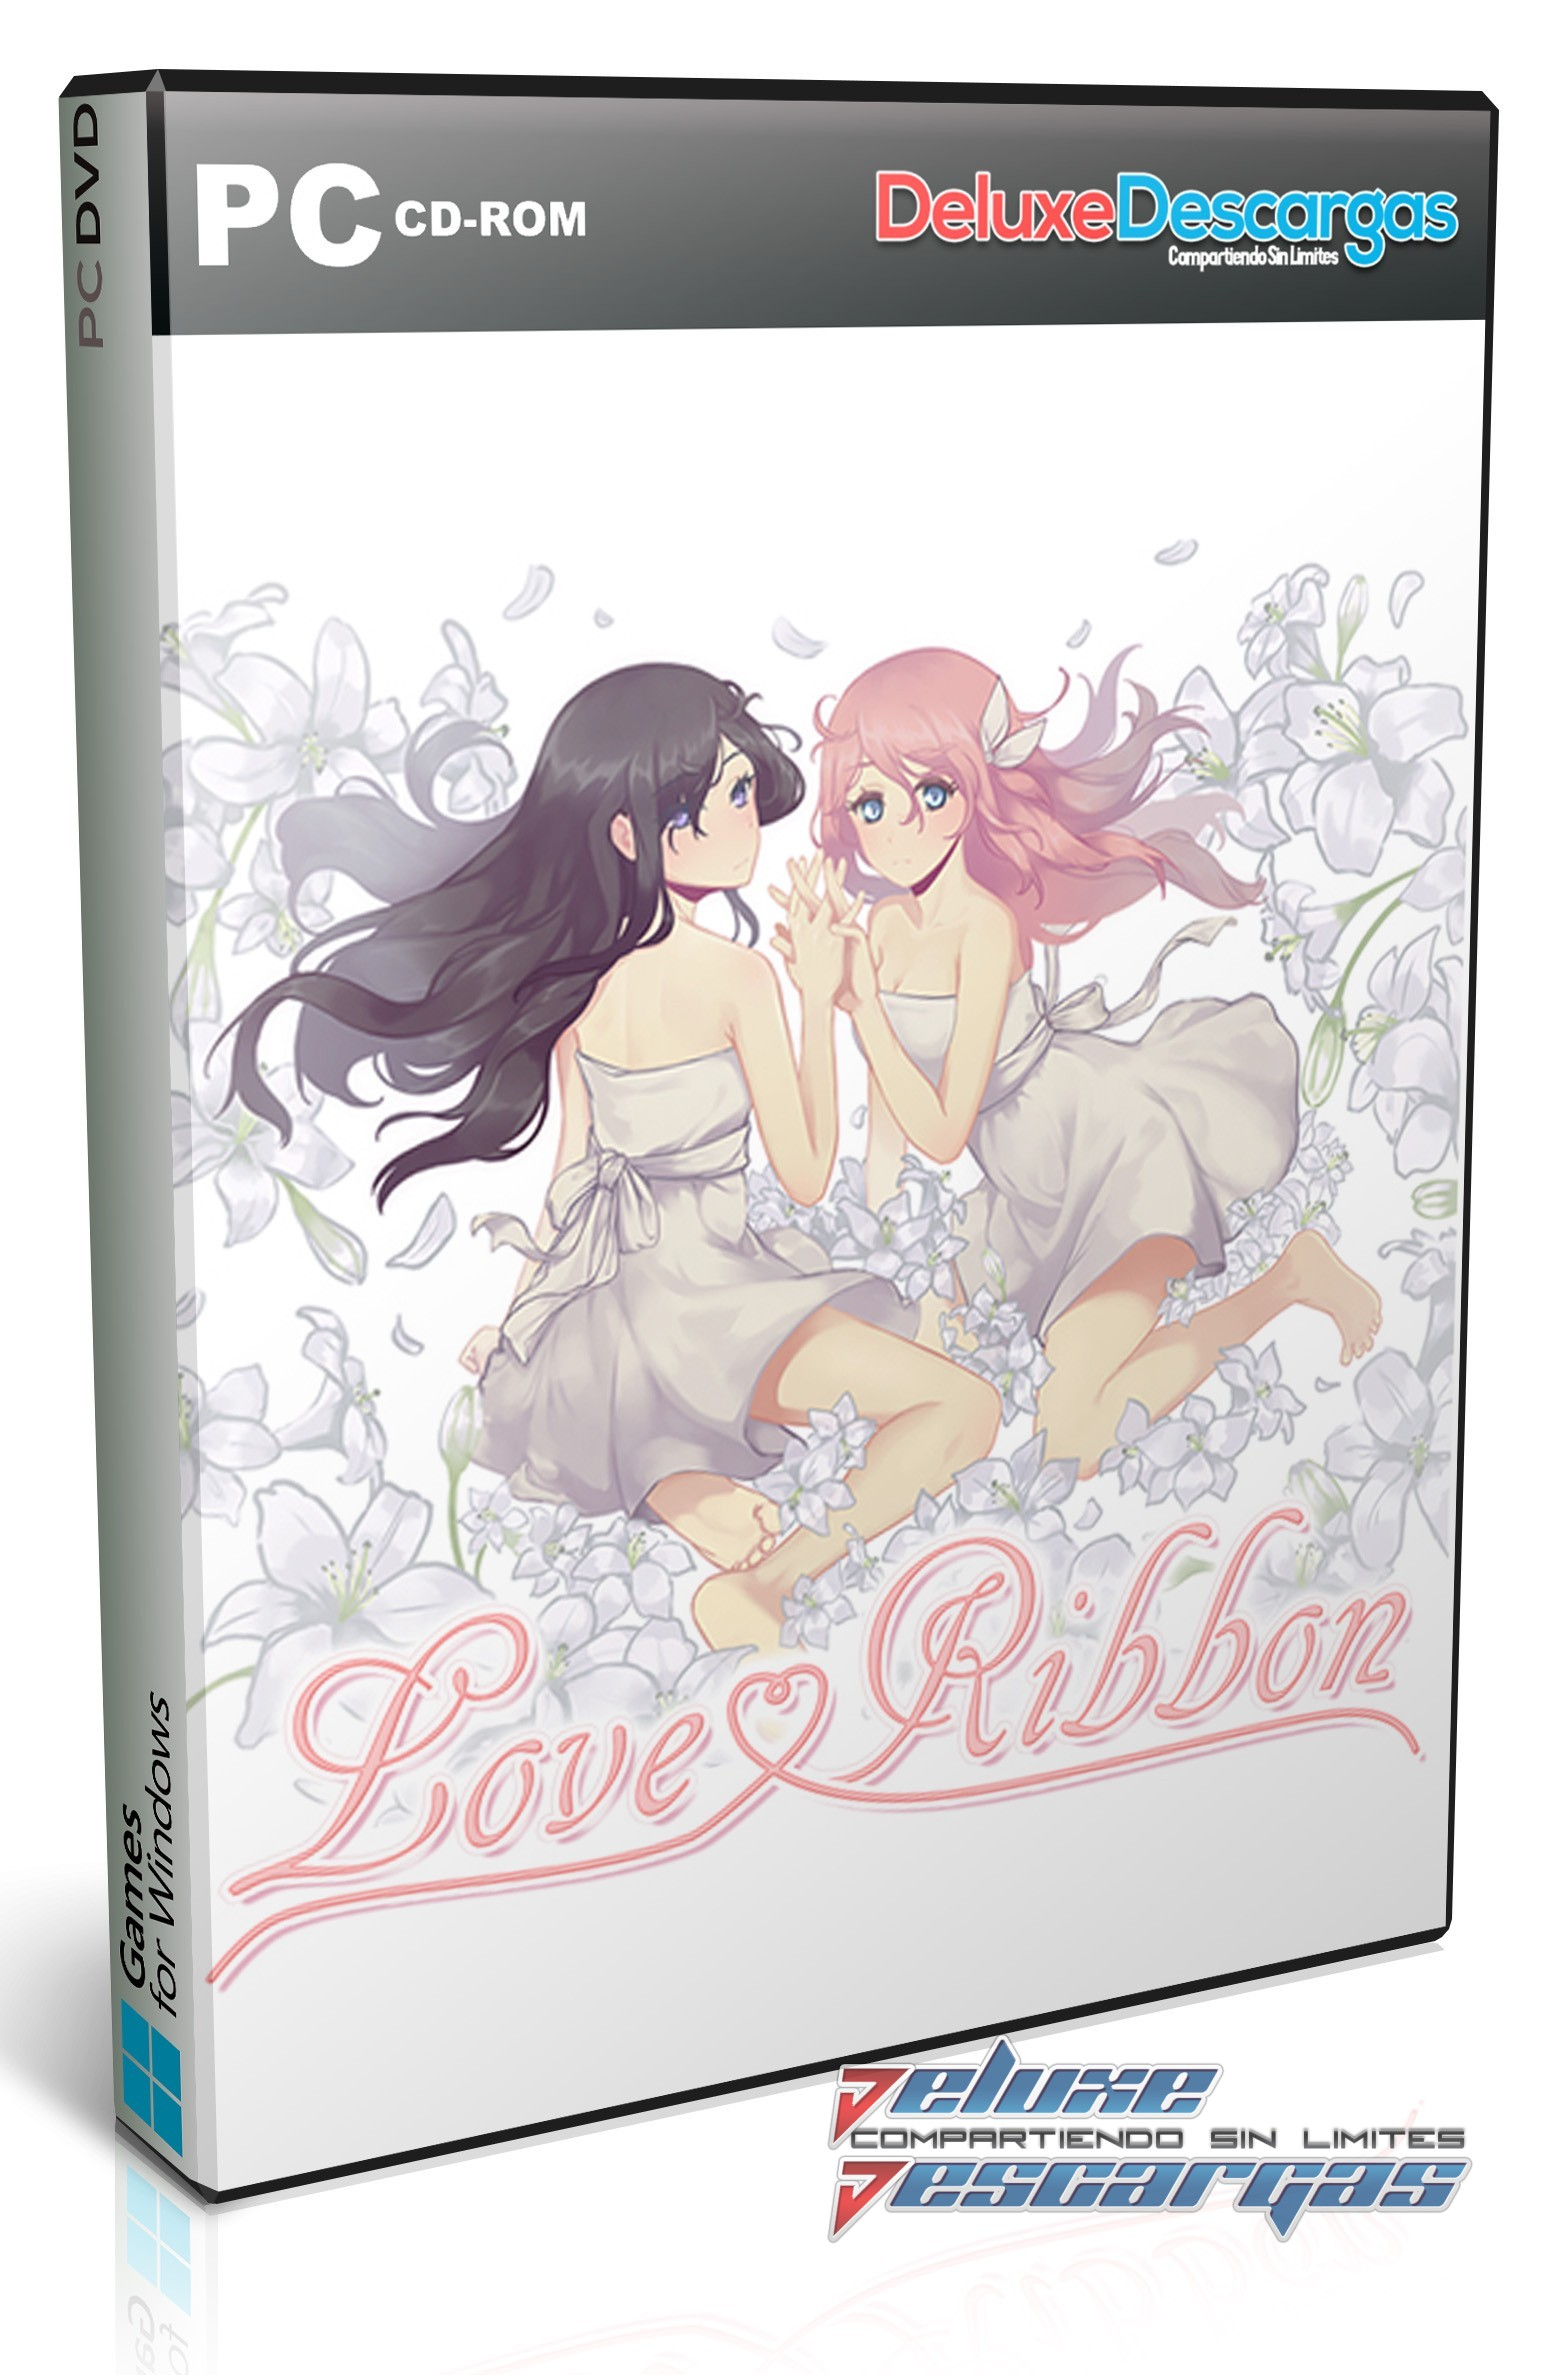 Descargar Love Ribbon Ingles Full Pc Game